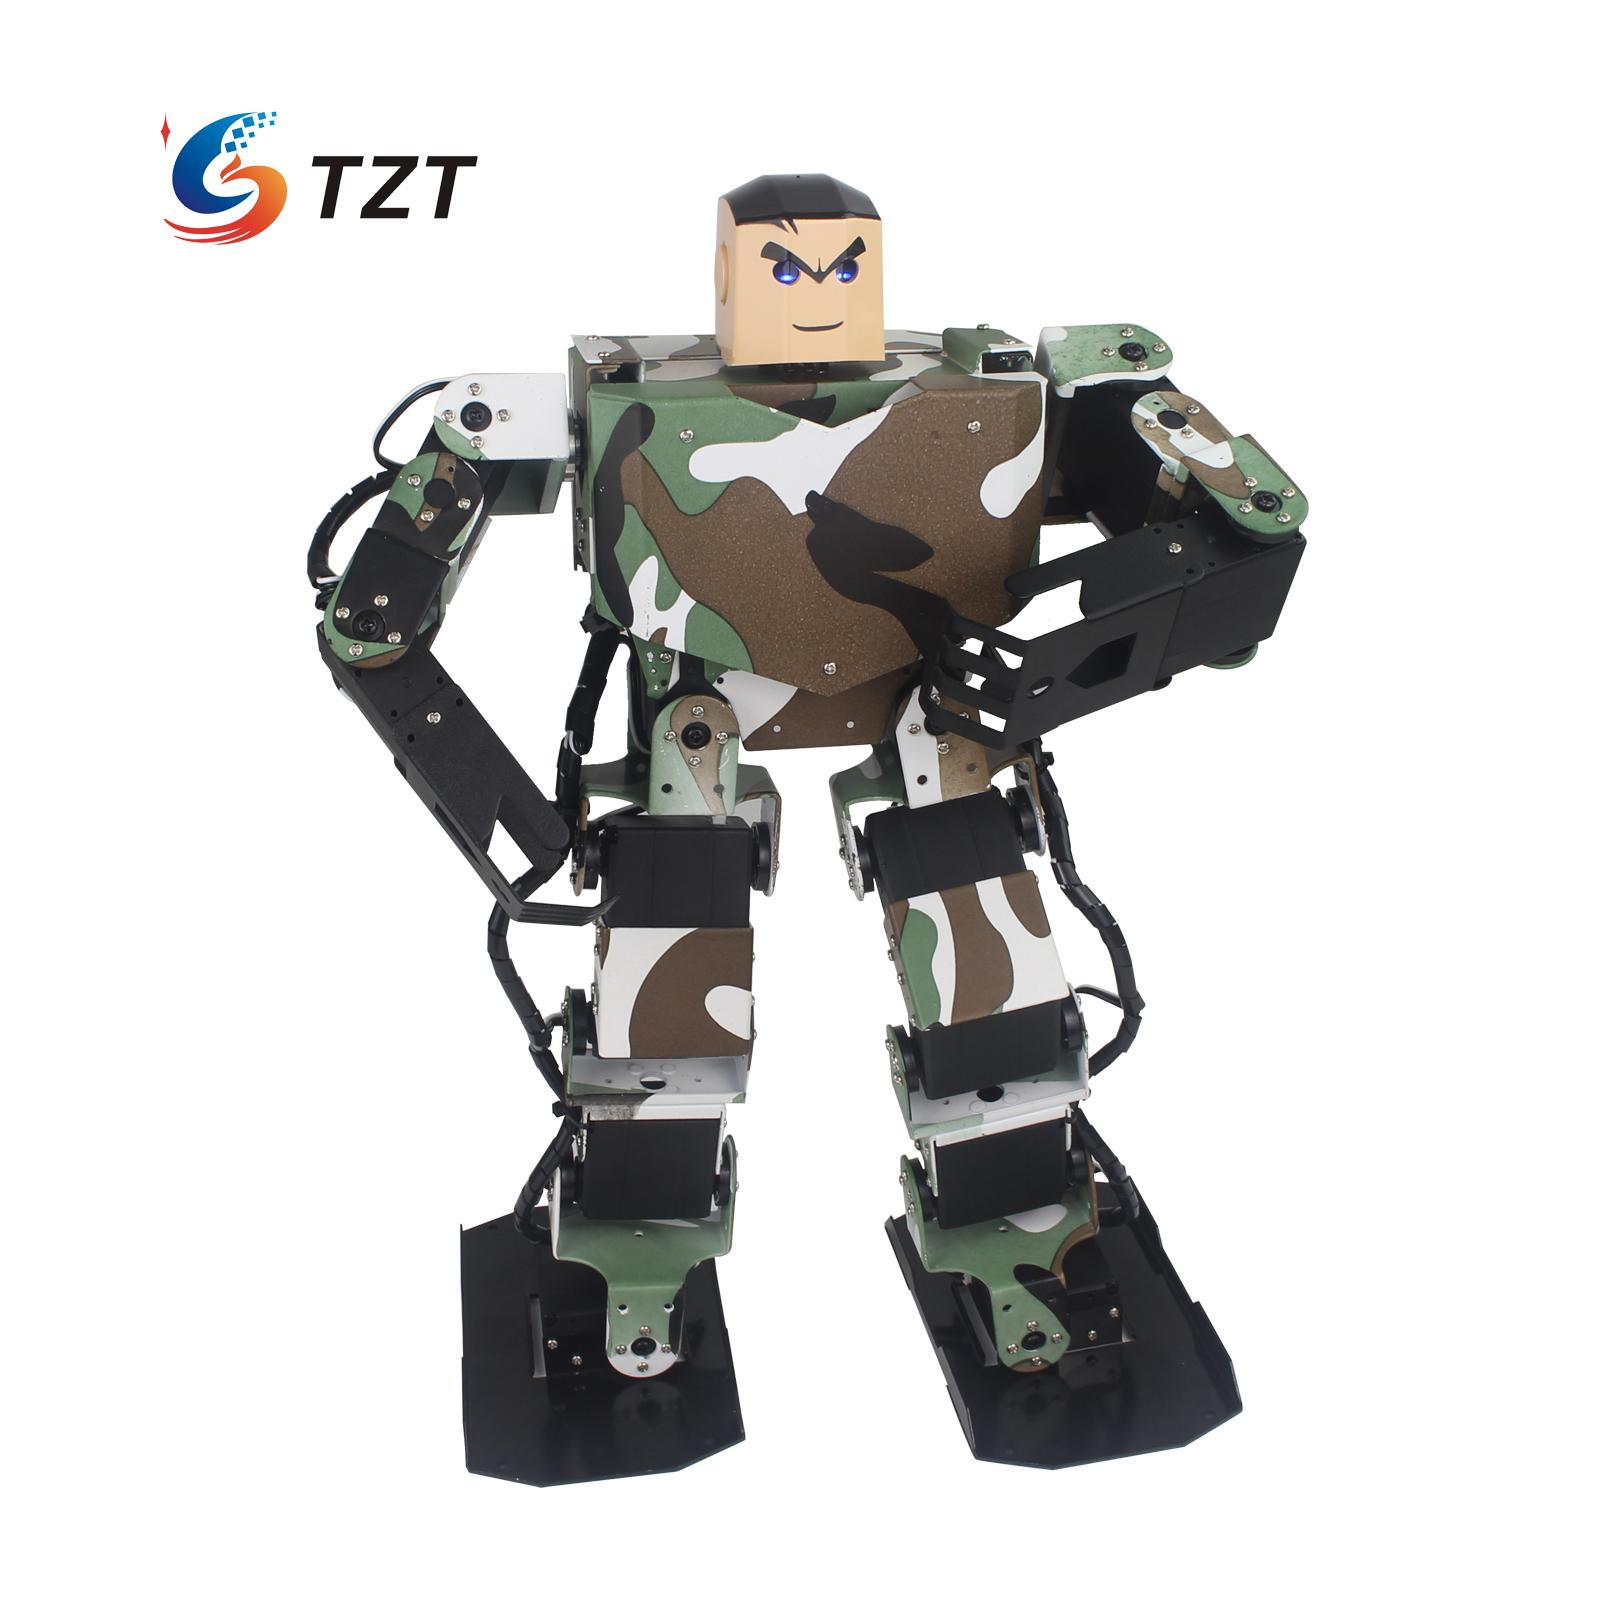 Soldier King 16DOF Smart Humanoid Robot Contest Dance Programmable Biped Robotics with Servos/Handle/Controller Assembled new 17 degrees of freedom humanoid biped robot teaching and research biped robot platform model no electronic control system